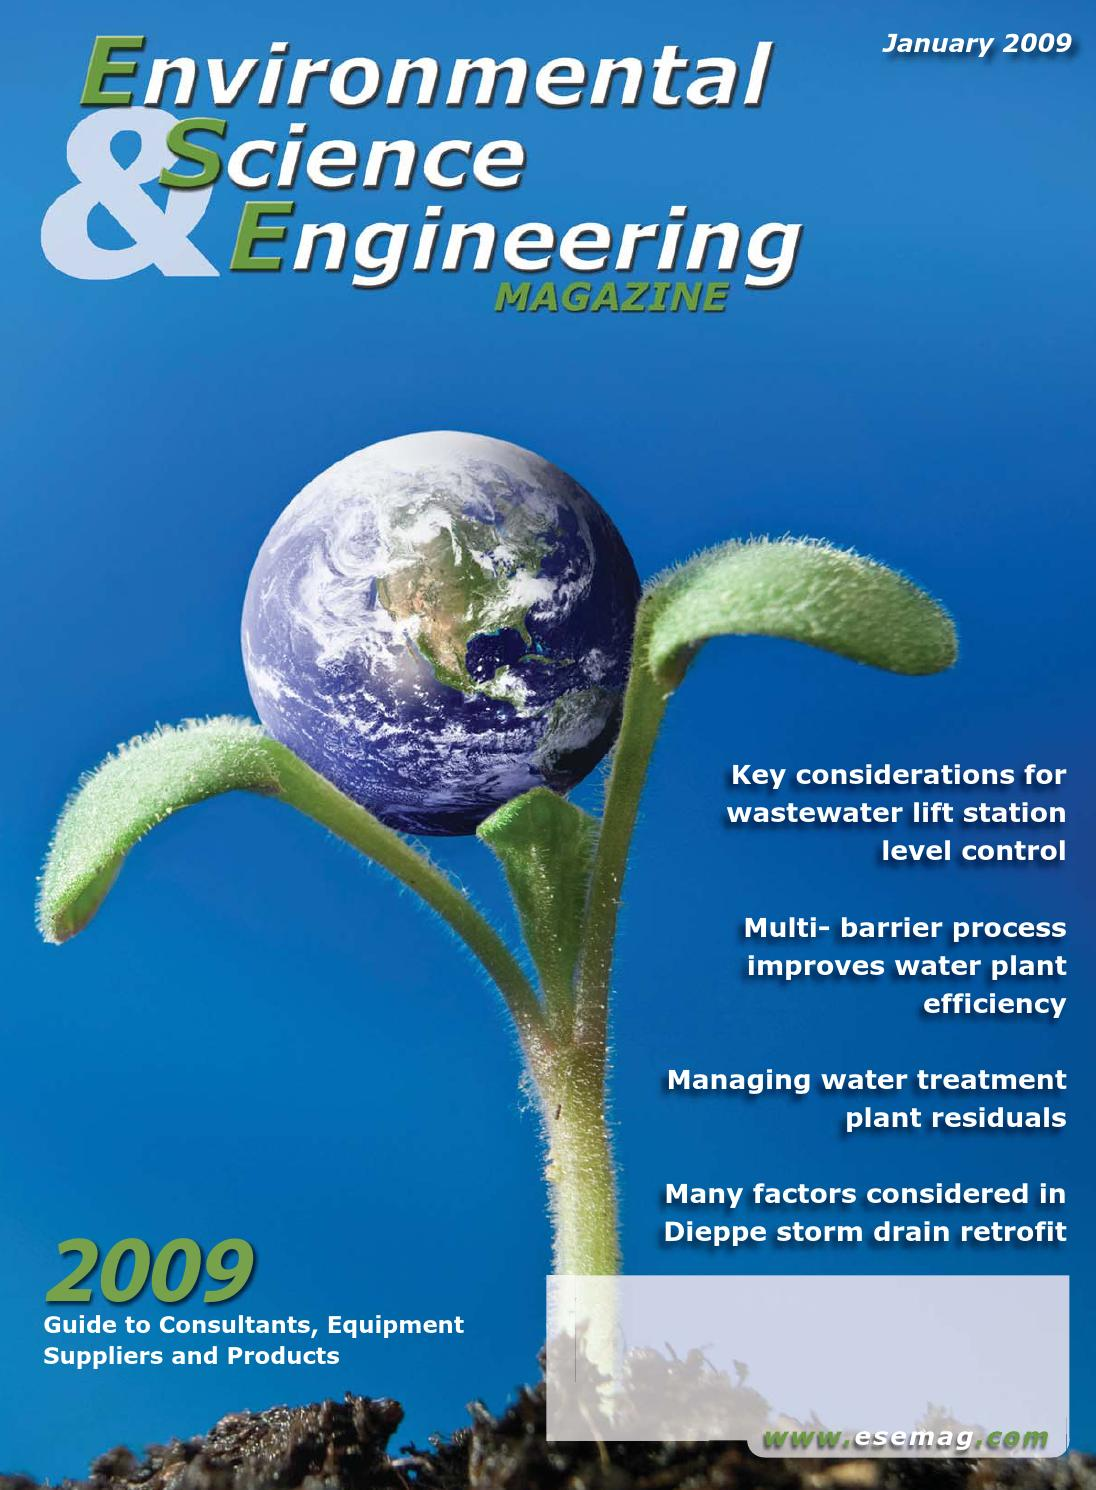 what is the role of engineers environmental sciences essay The journal of civil engineering and environmental sciences, which is a part of recent science journals provides a wide range of the highly technological, original, creative and quality publications covering a broad area of research activities in the civil and environmental engineering sciences.